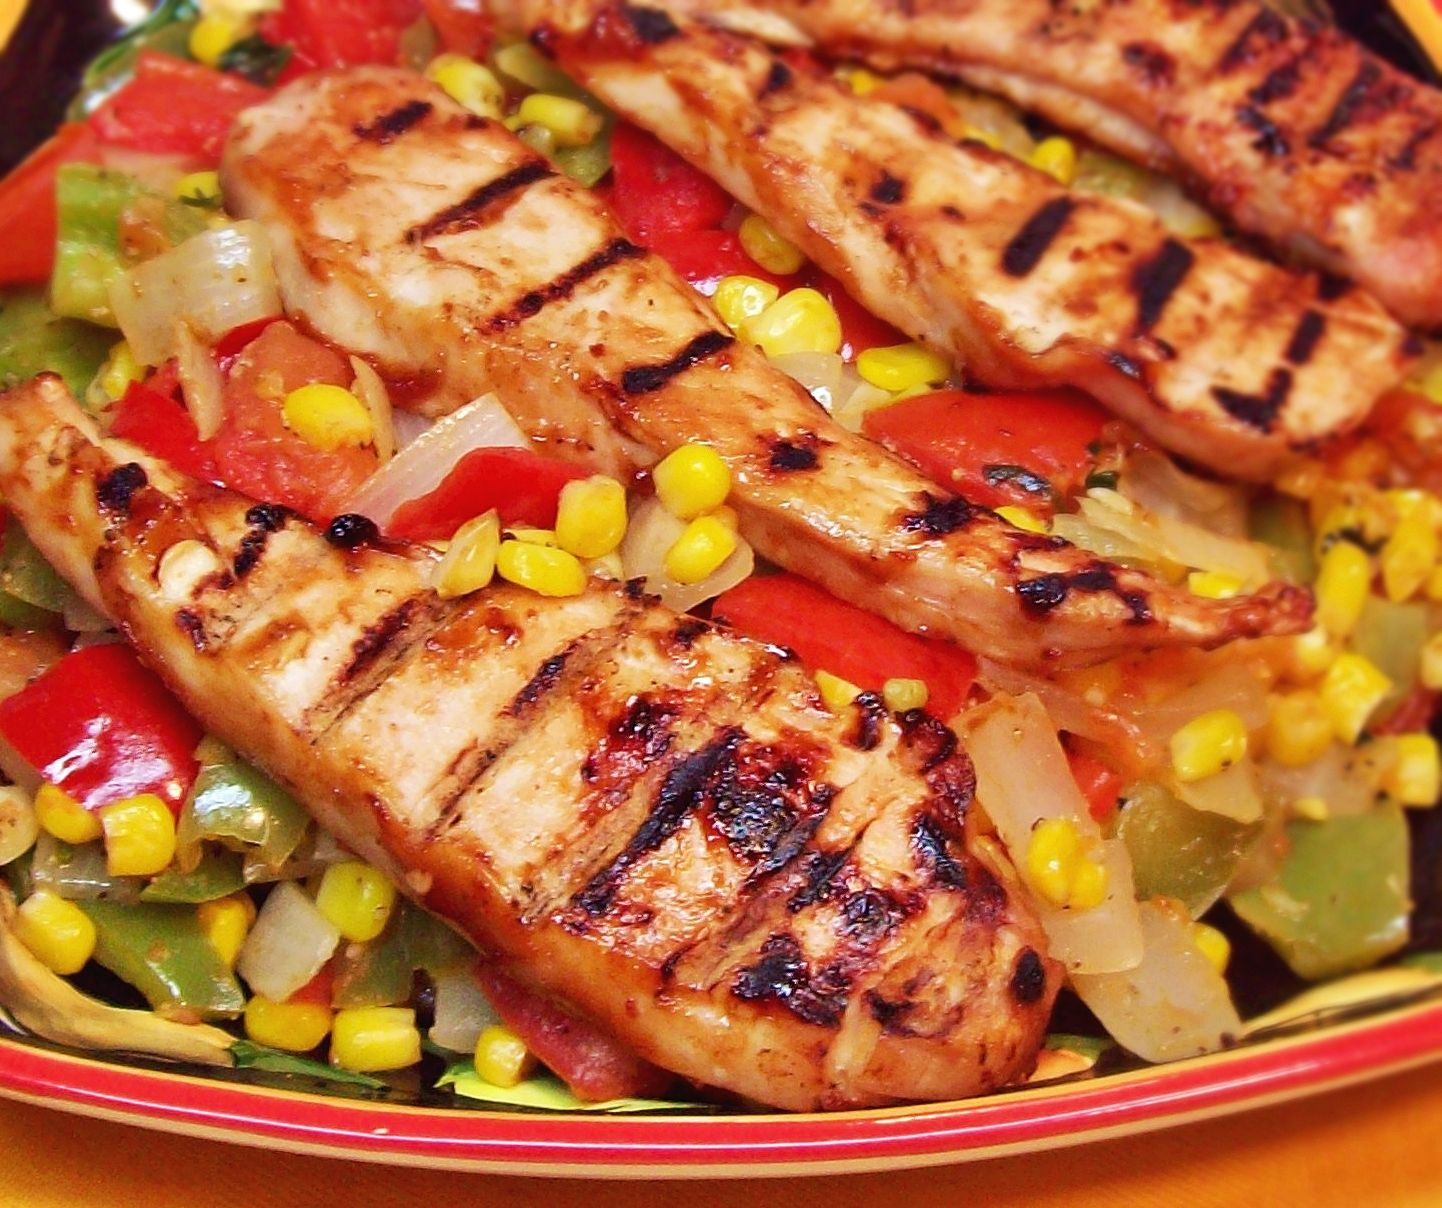 Image of Corn and Peppers with Grilled Chicken